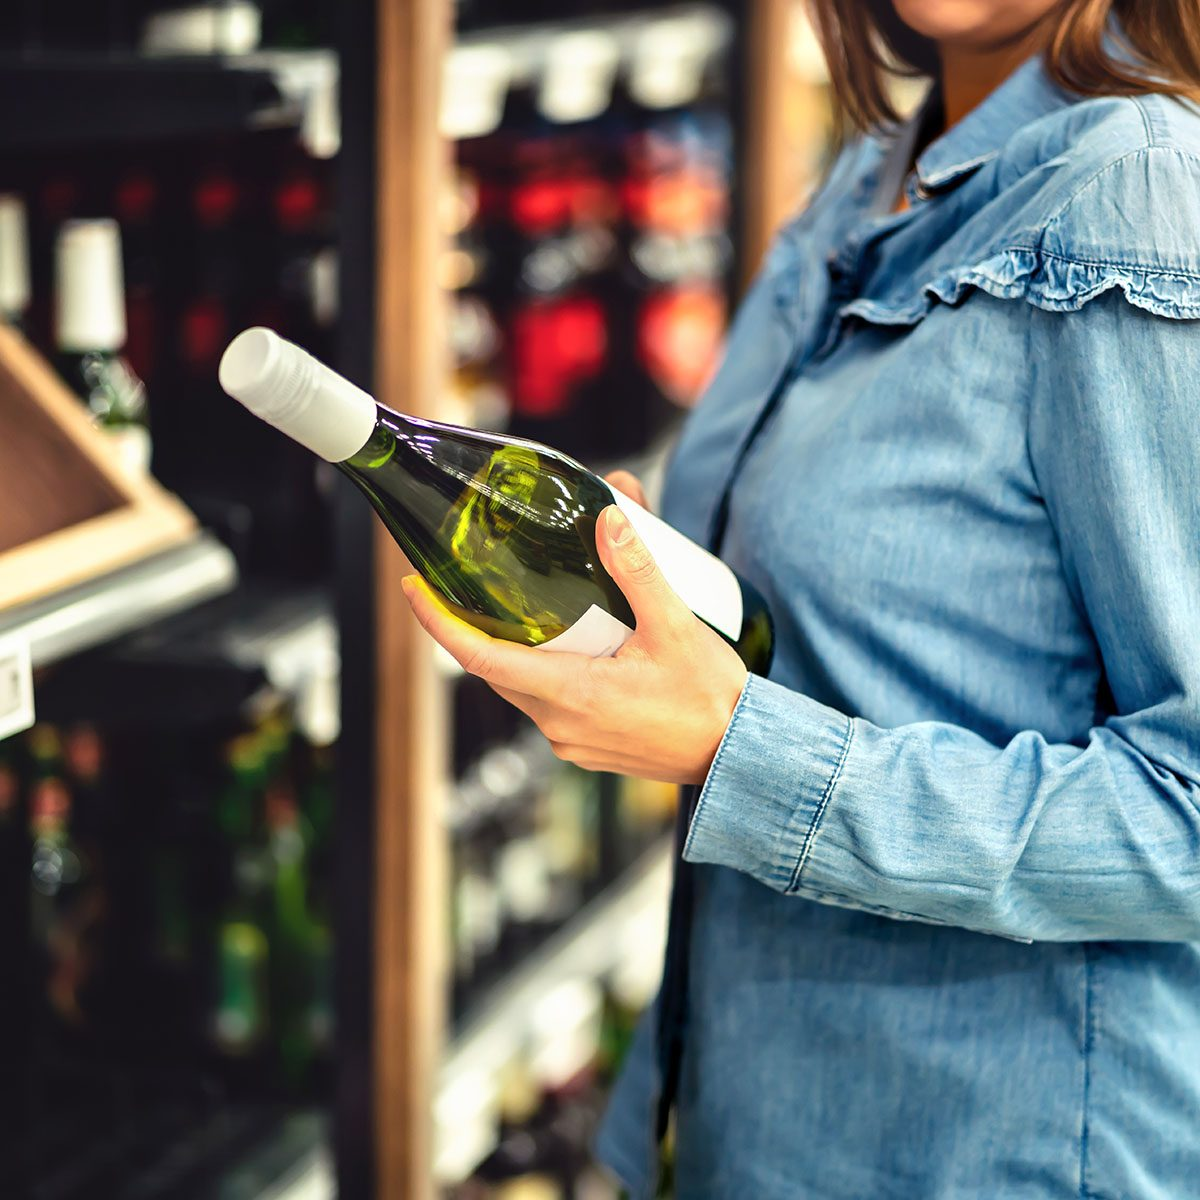 Customer buying white wine or sparkling drink.